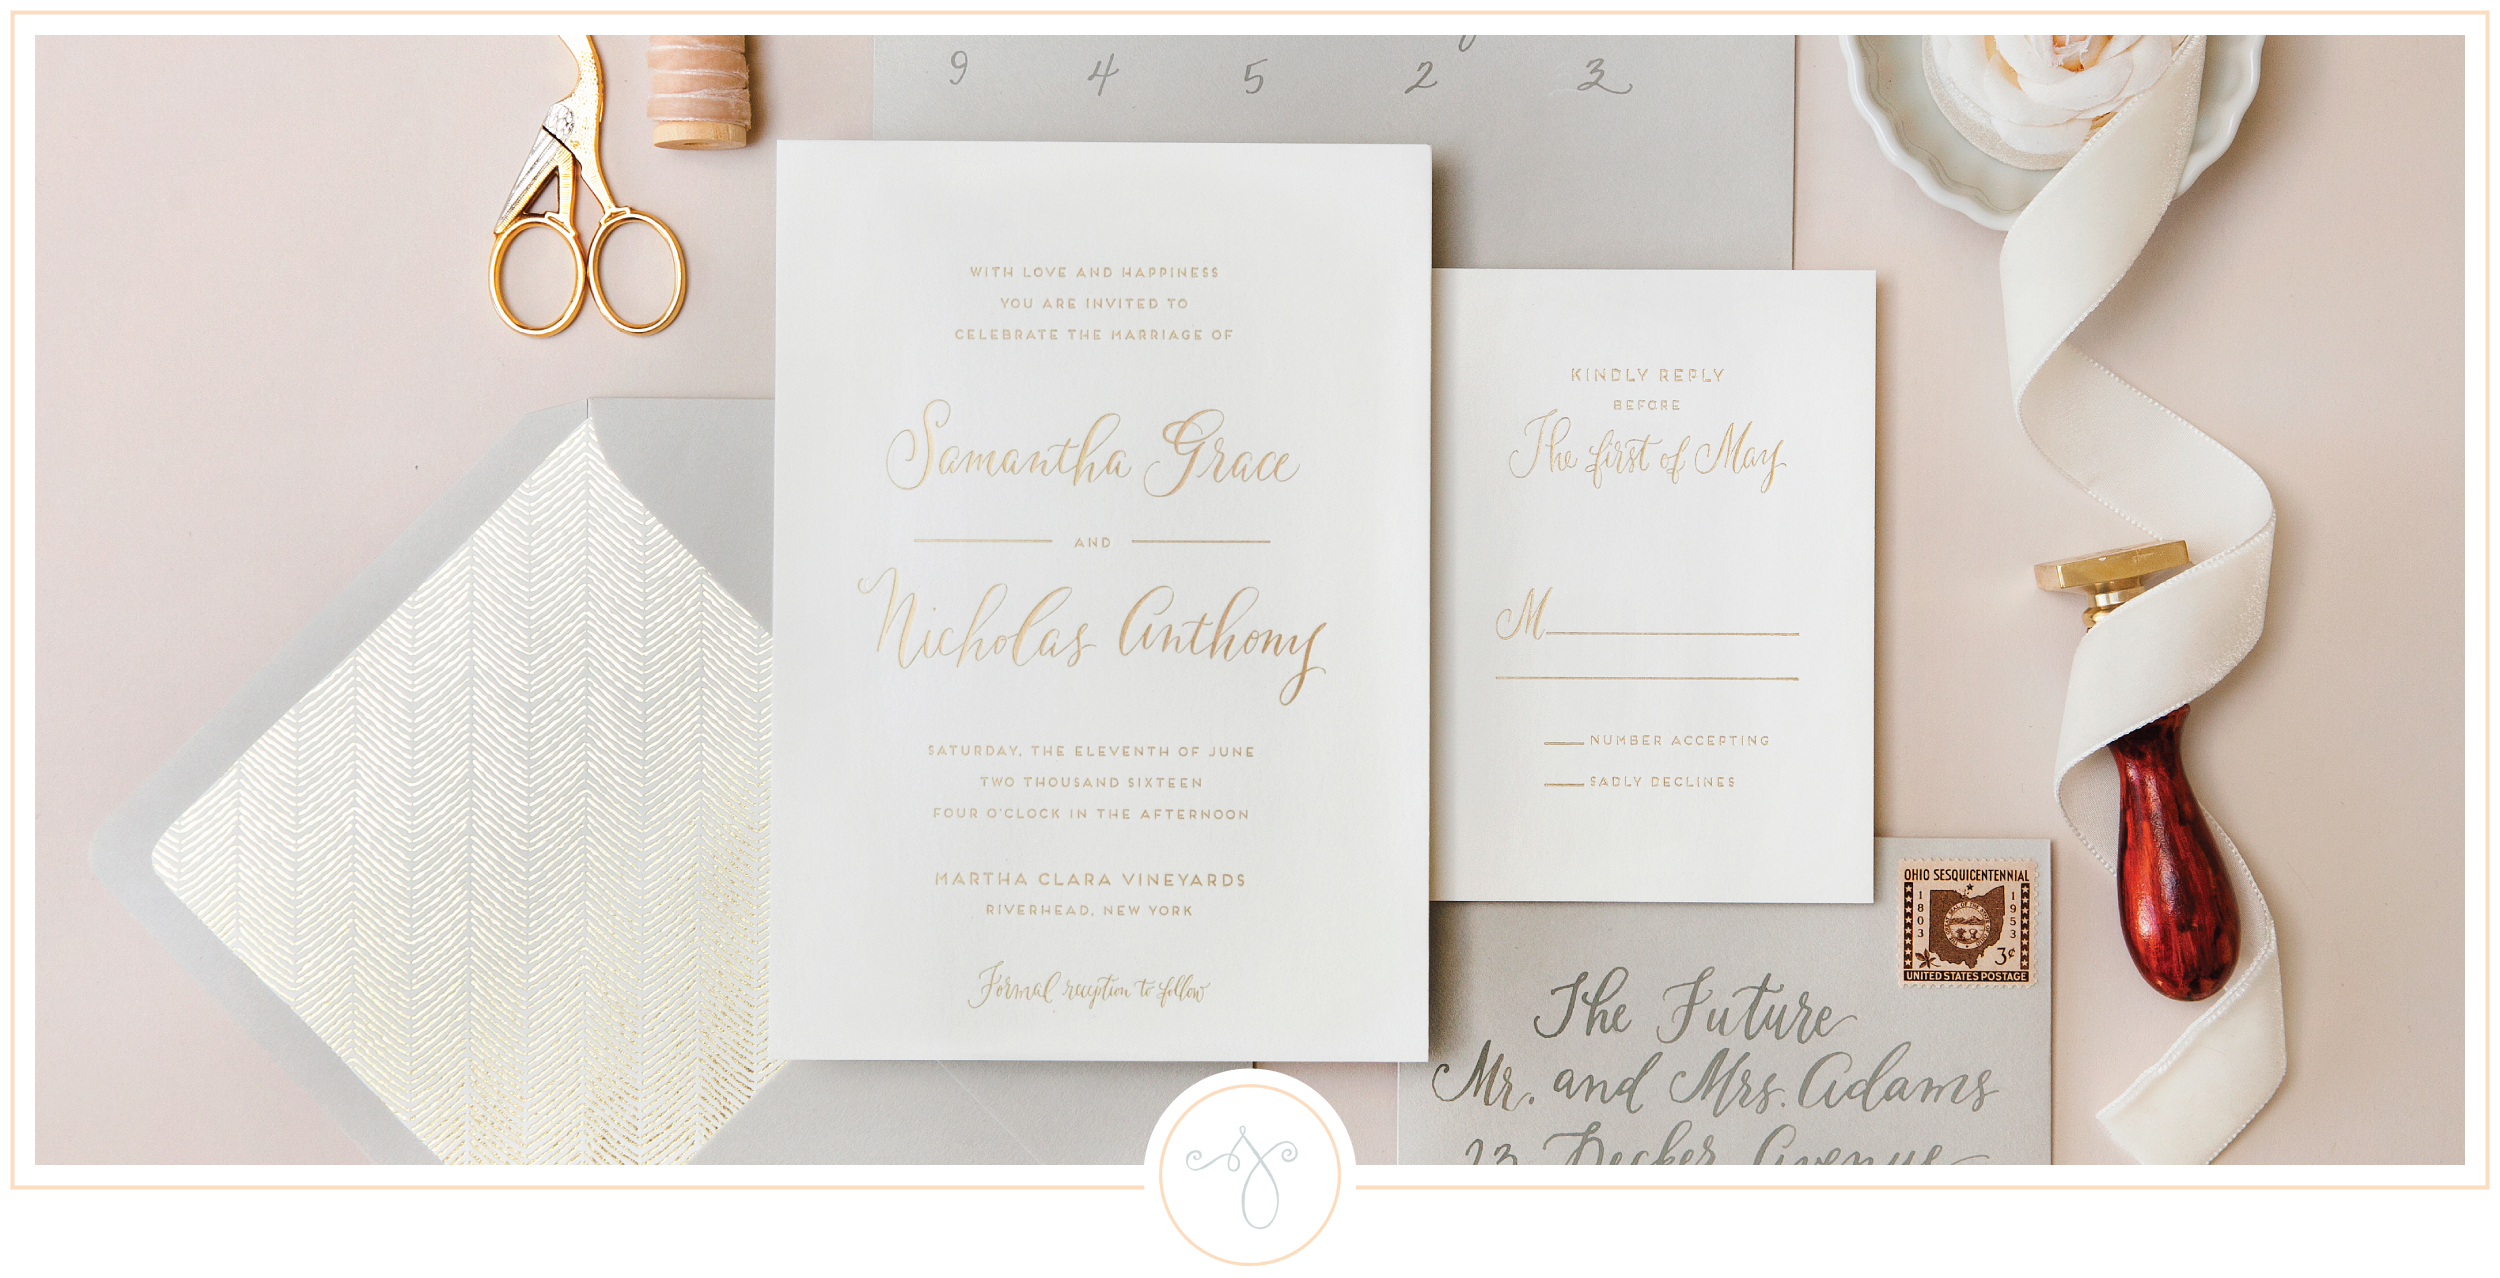 Sincerely-Jackie-Long-Island-Custom-Wedding-Invitations-3.jpg